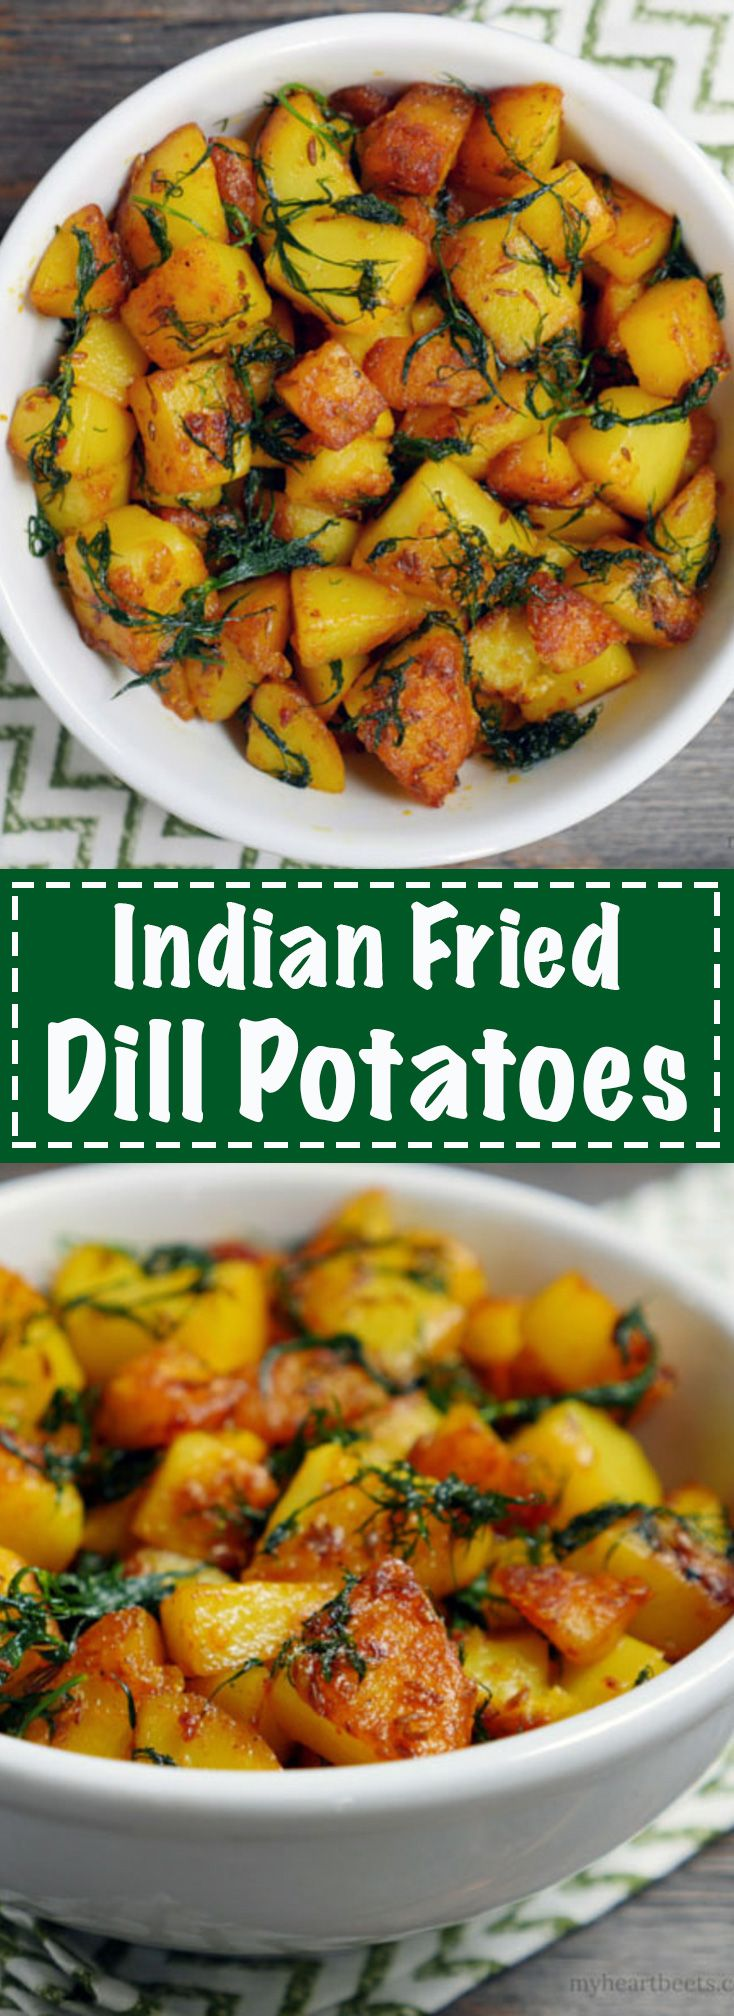 Indian Fried Dill Potatoes on MyHeartBeets.com